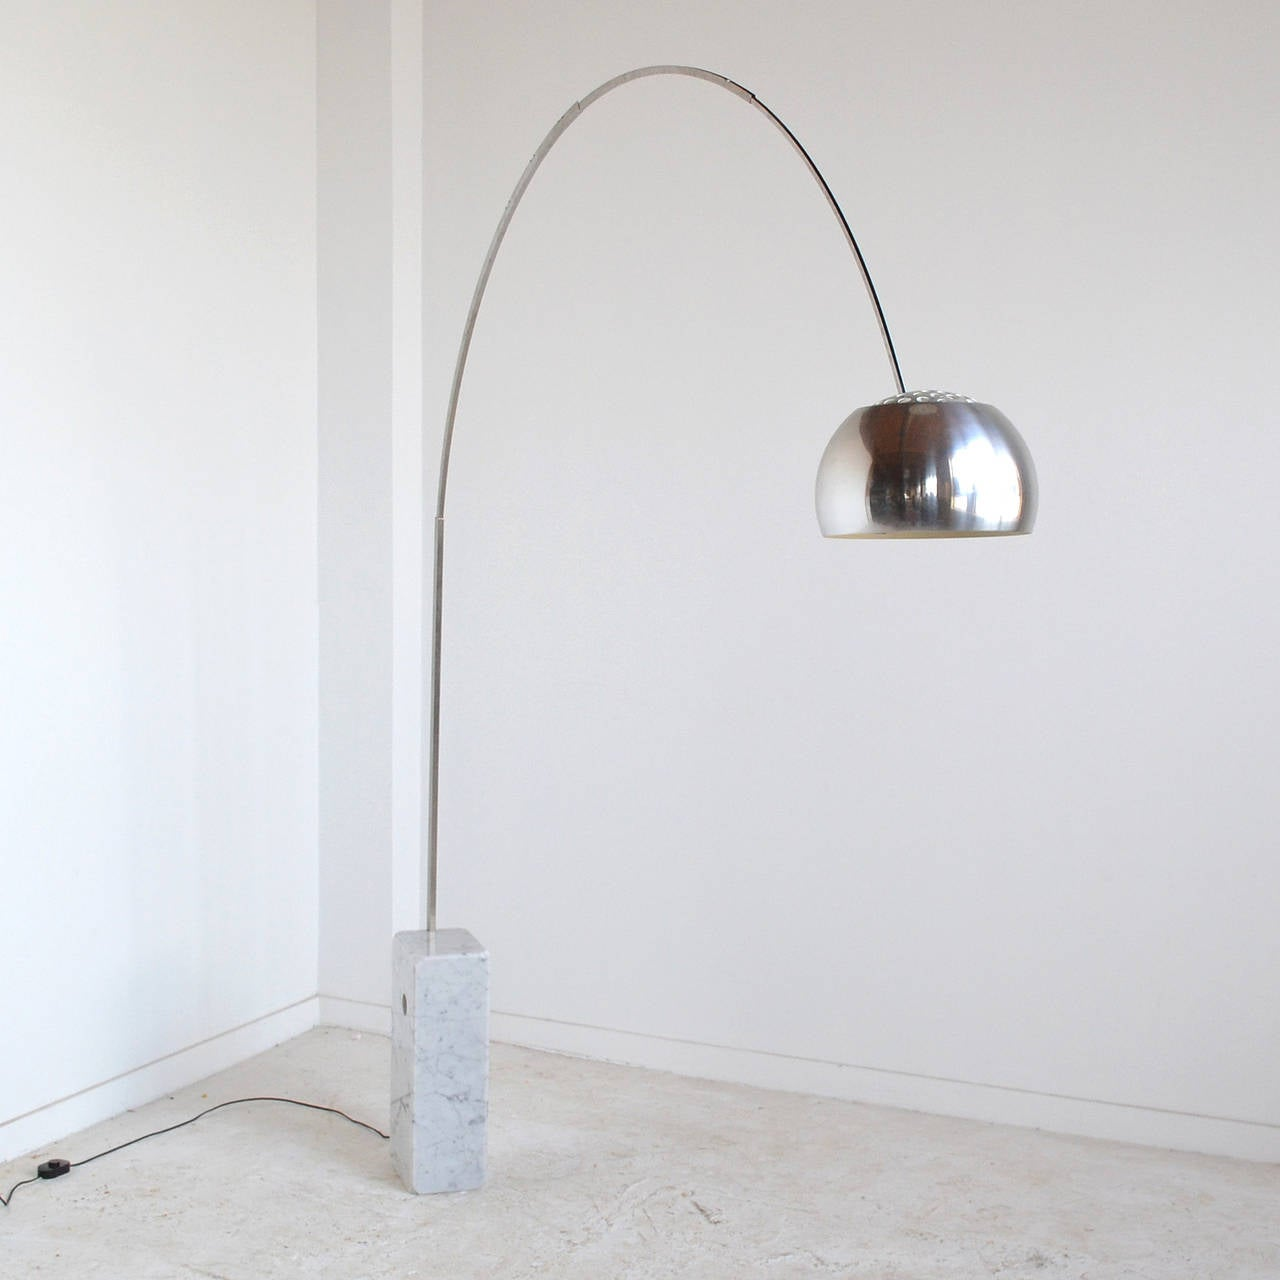 Achille Castiglioni Arco Lamp By Flos At 1stdibs